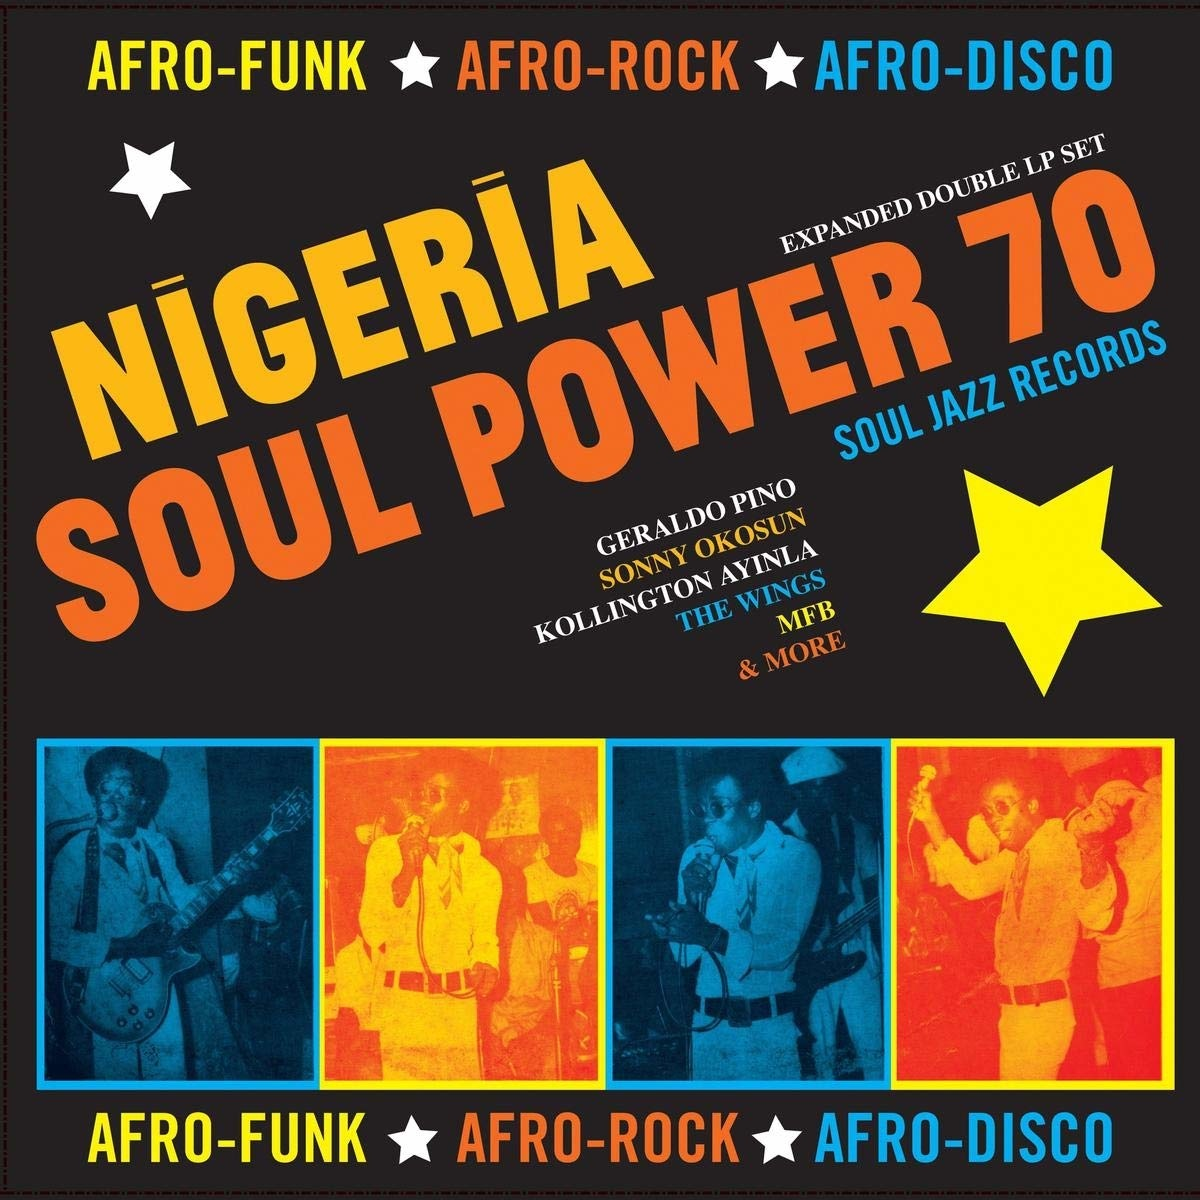 Nigeria Soul Power 70  Expands to Include Even More Funky Soul